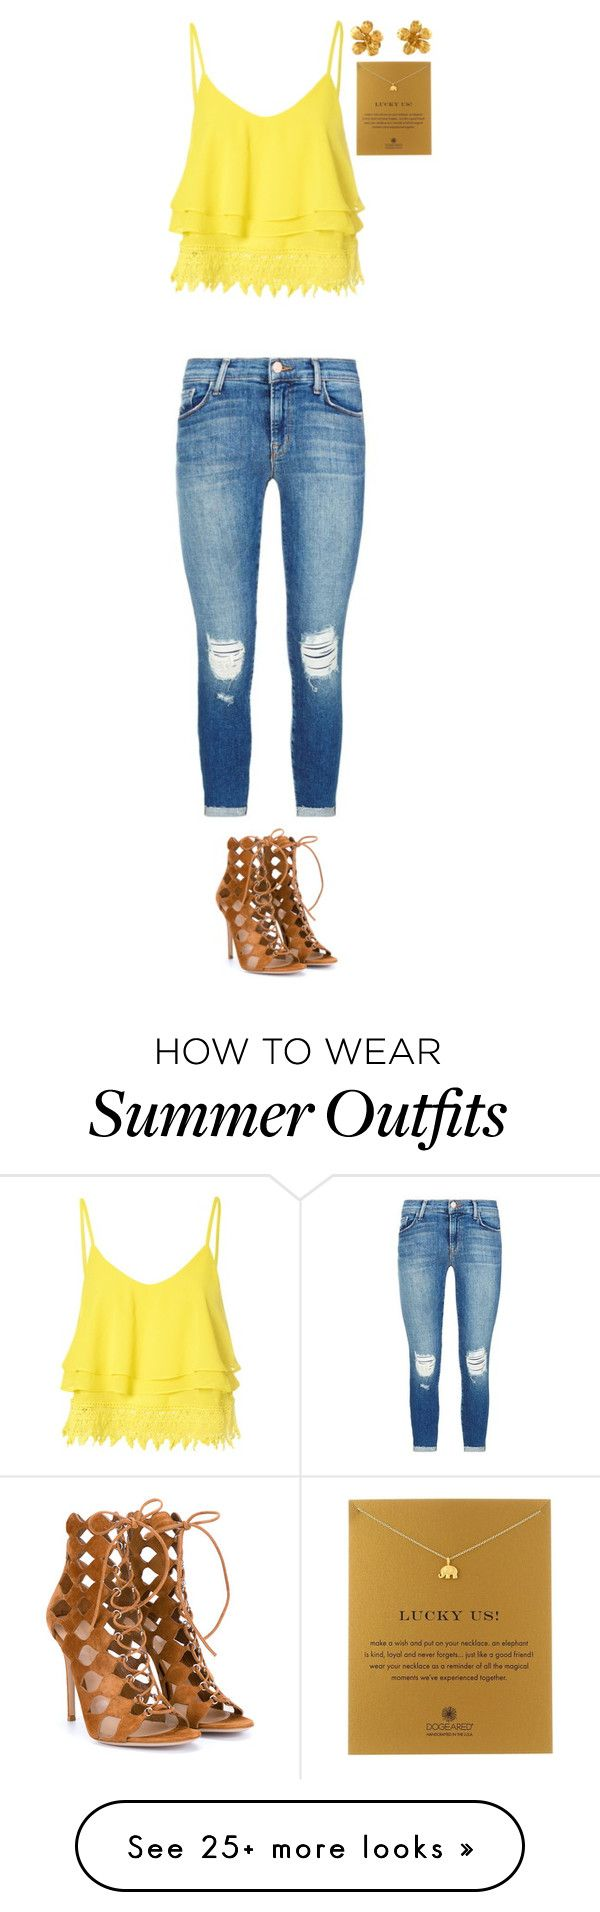 """Summer Outfit"" by sarahlong3019 on Polyvore featuring Glamorous, J Brand, Gianvito Rossi, Alex Monroe and Dogeared"